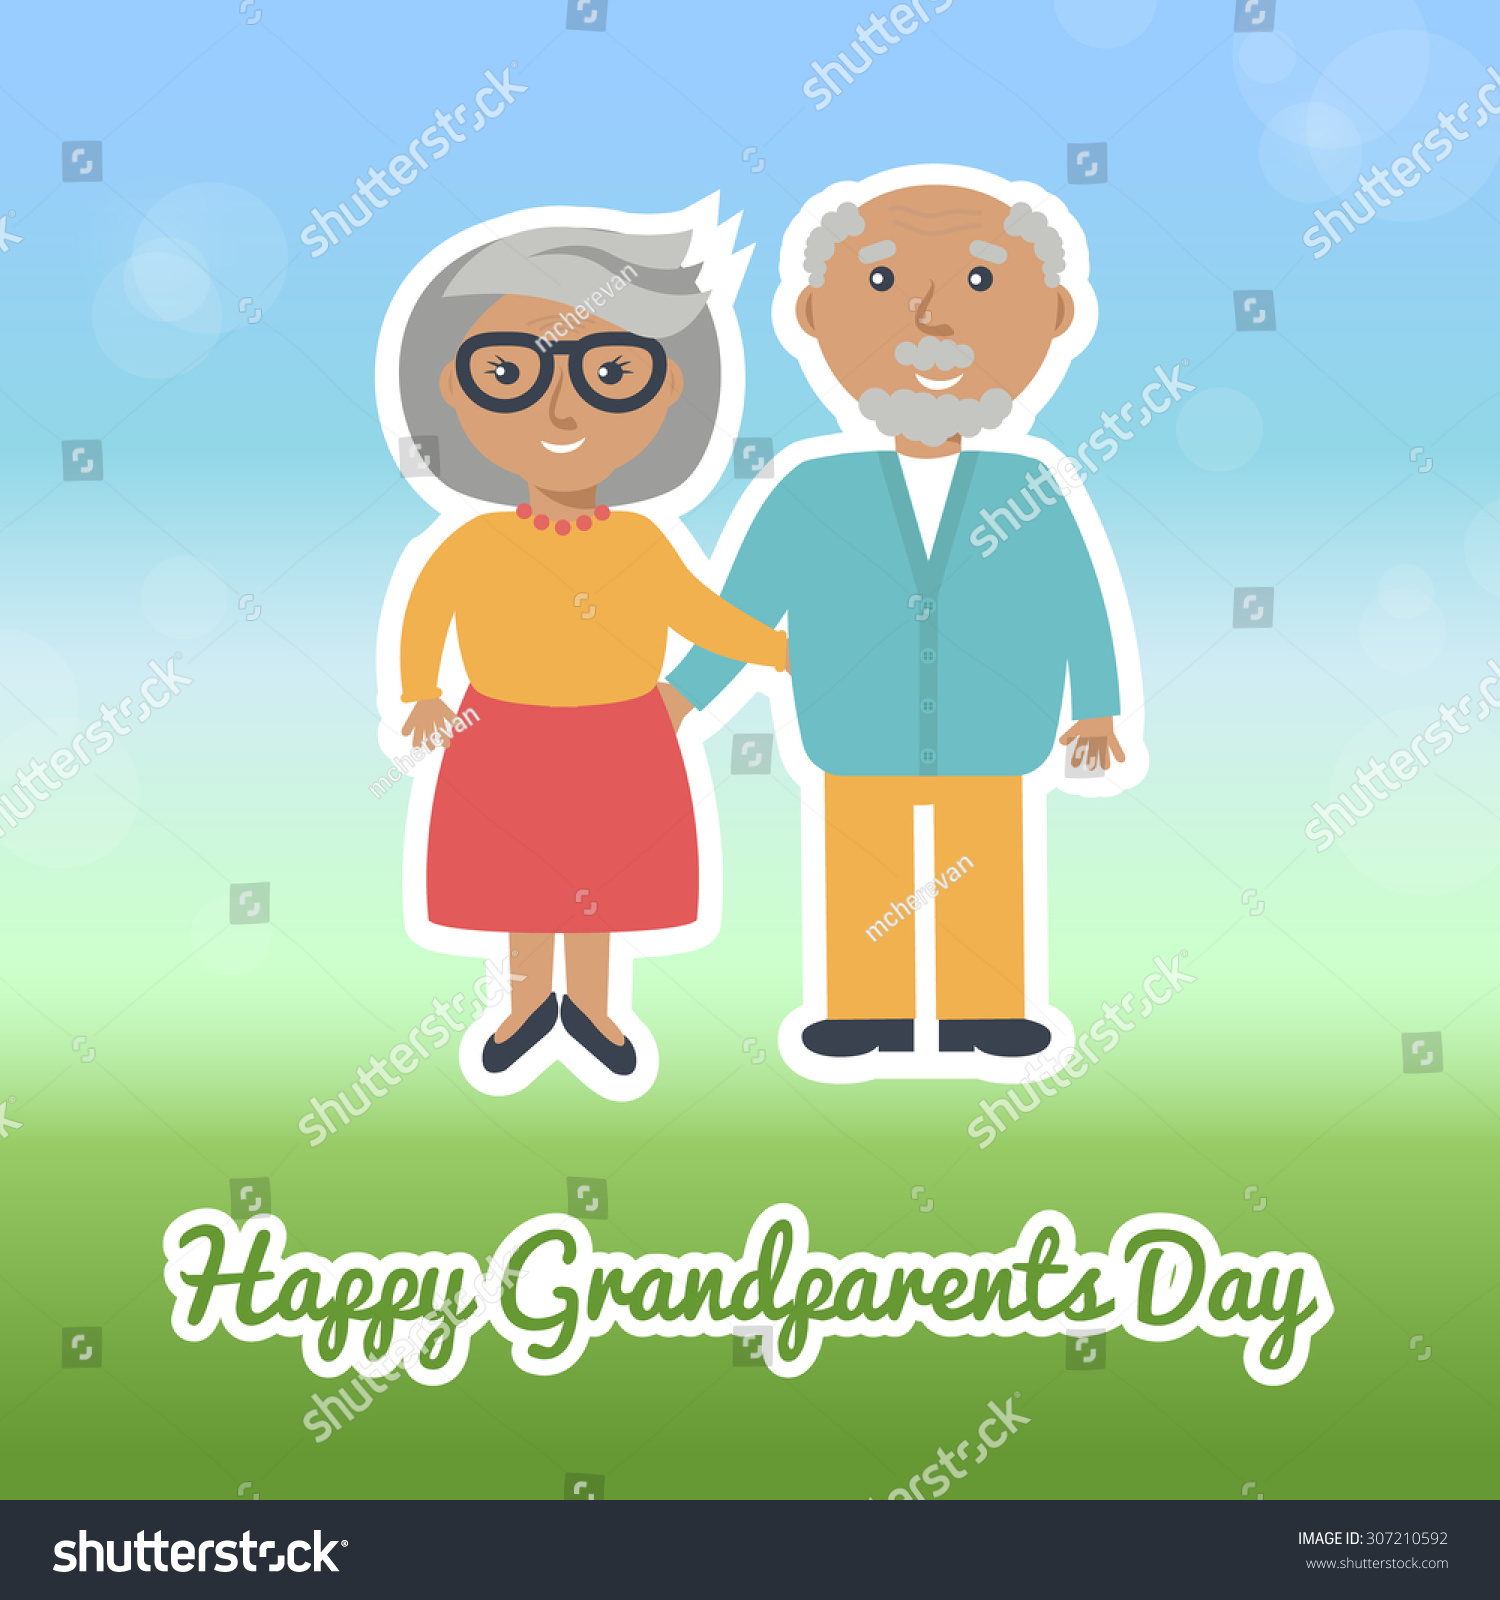 Happy Grandparents Day Card Design Grandmother Stock Vector Royalty